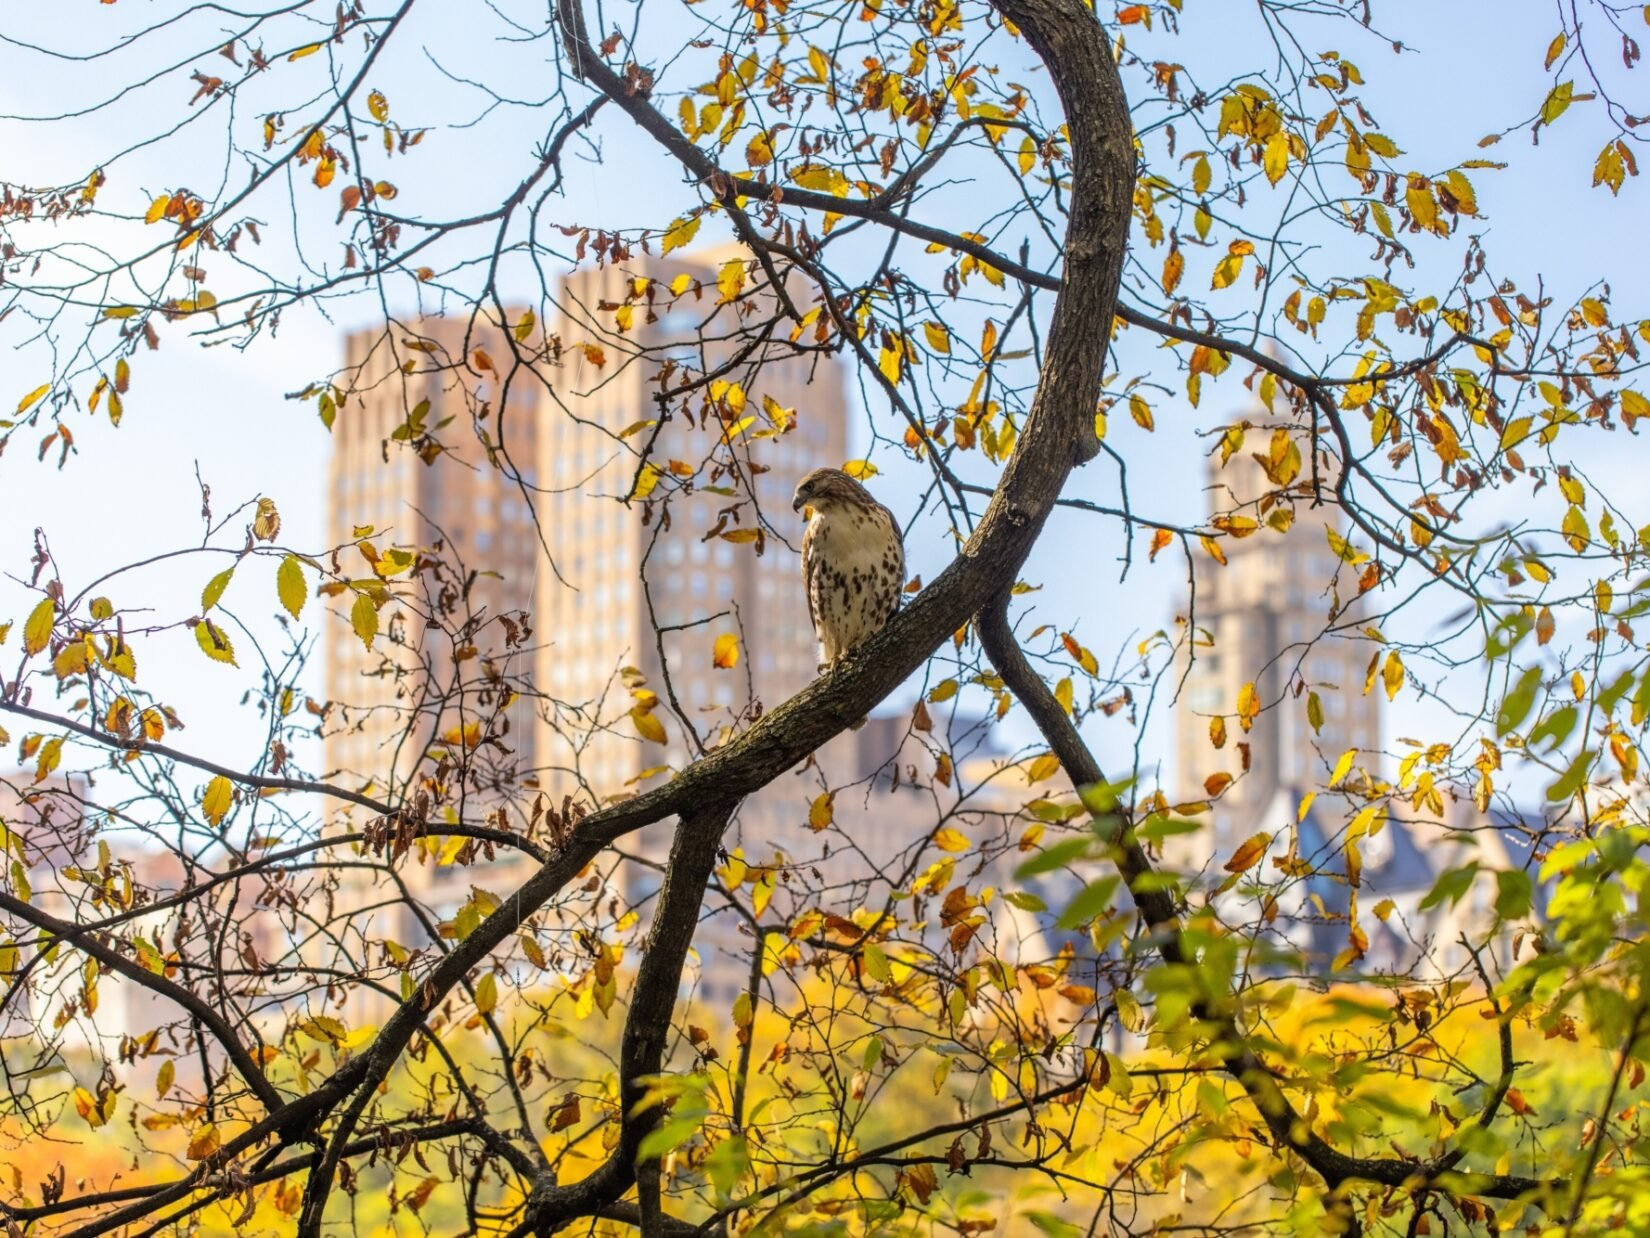 A hawk perches on a branch in autumn against a backdrop of fall colors and New York apartment buildings